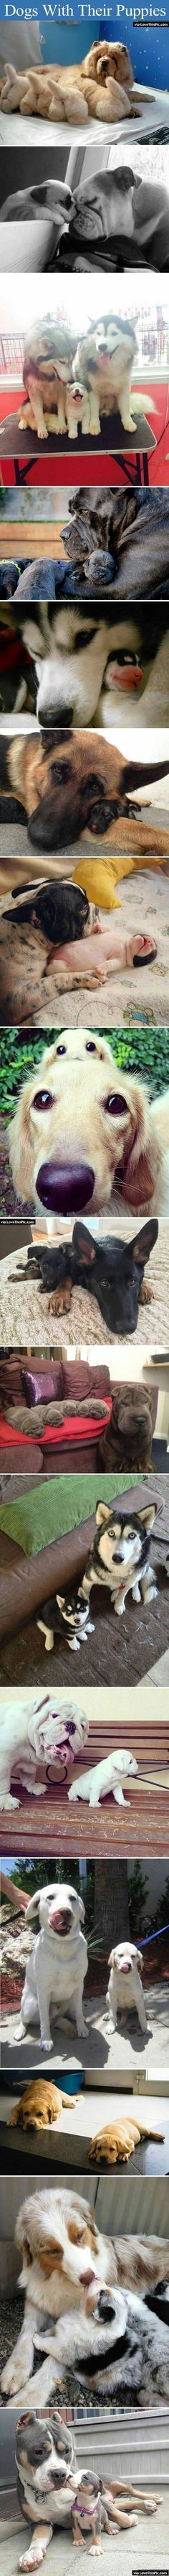 Dogs With Their Puppies cute animals cat cats adorable animal kittens pets kitten funny pictures funny animals funny cats